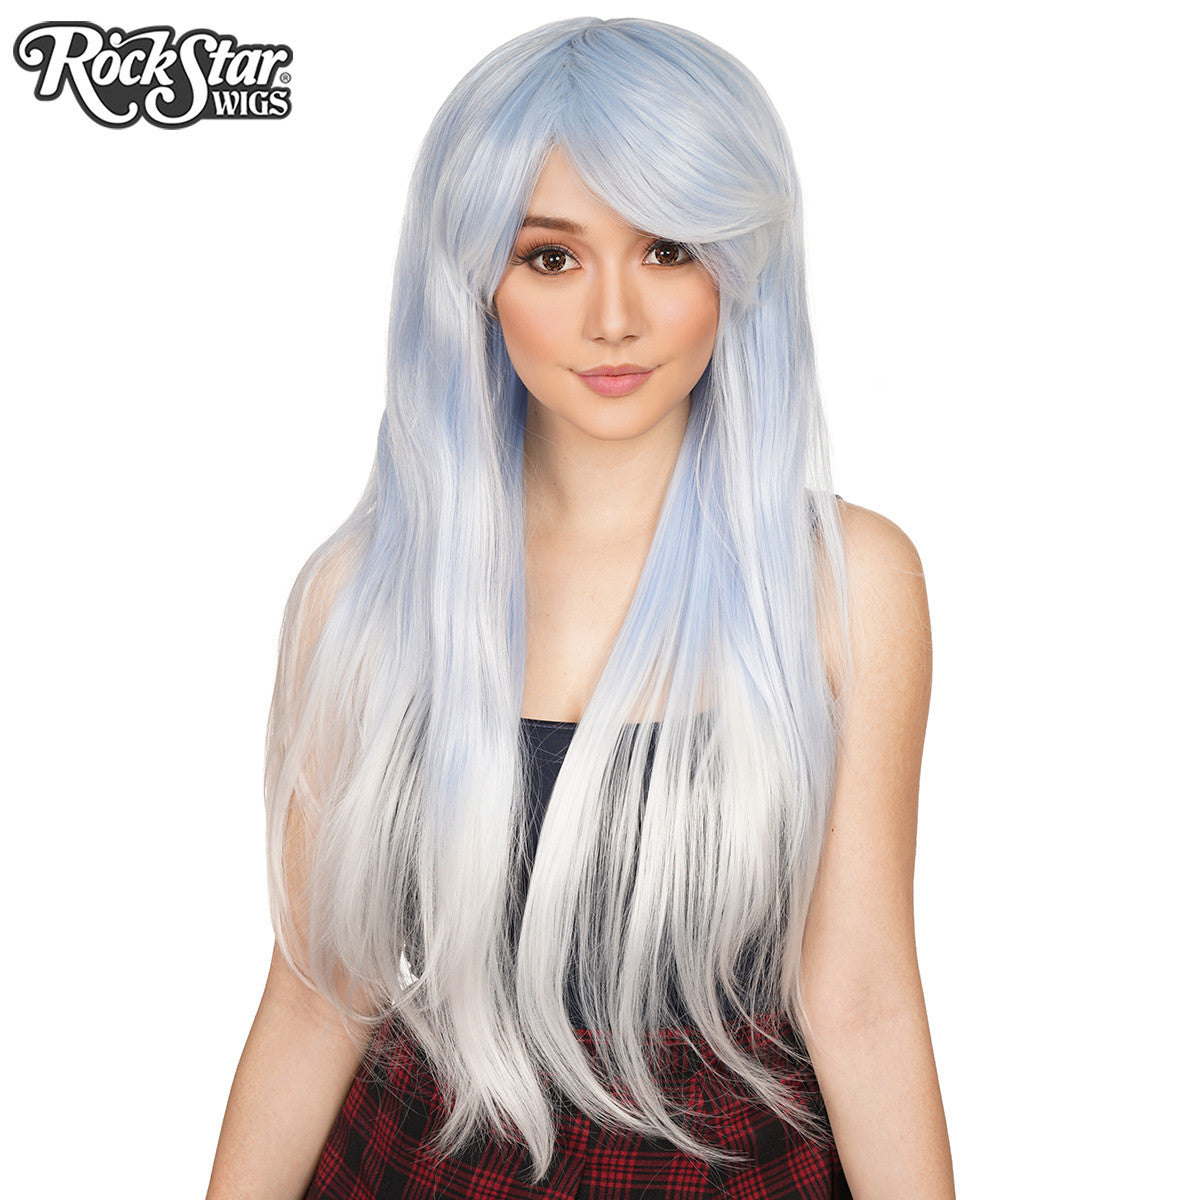 RockStar Wigs® <br> Ombre Alexa™ Collection - Sax -00204